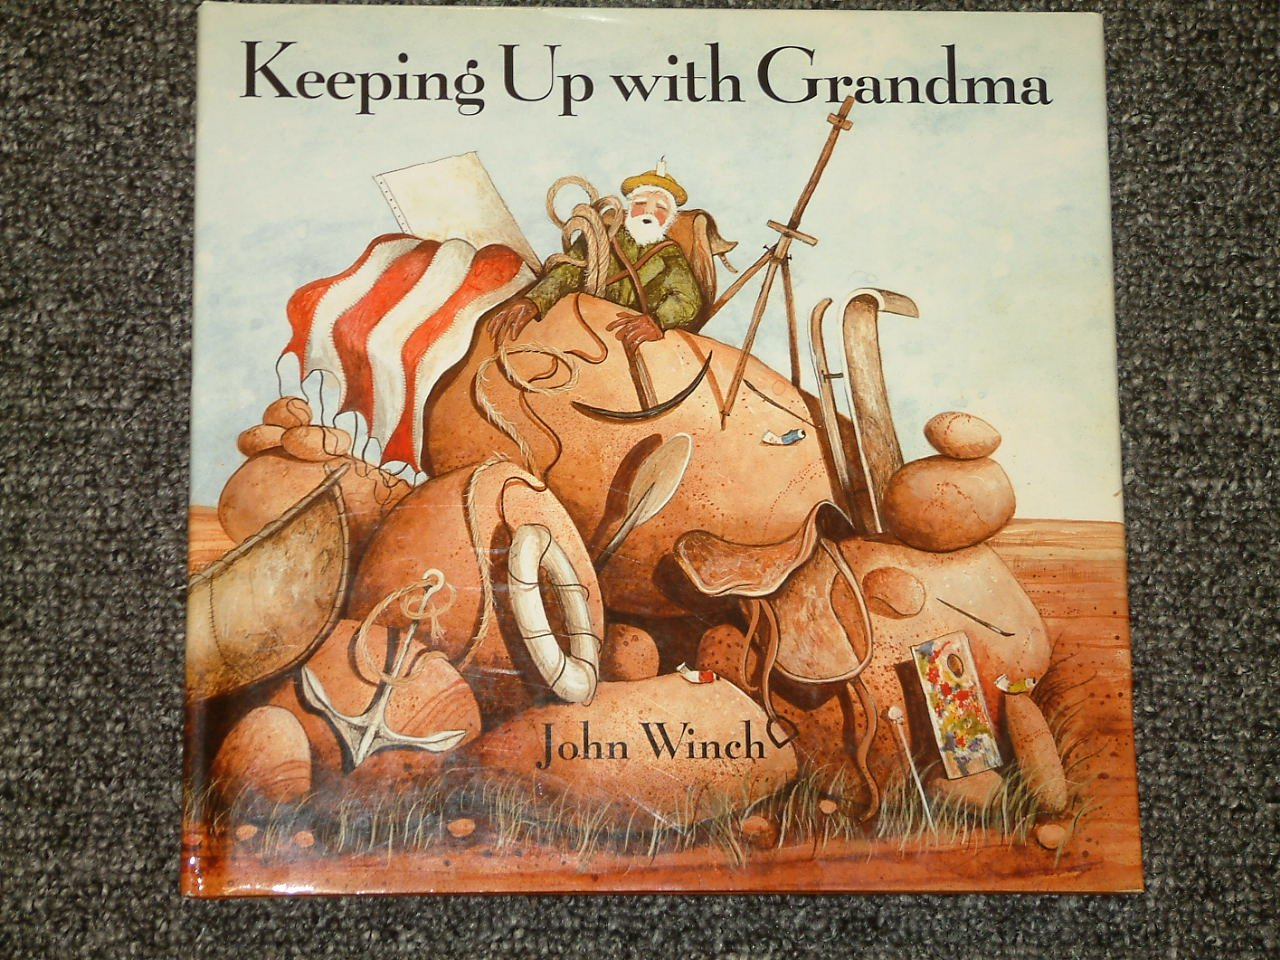 Keeping Up with Grandma by John Winch HB DJ